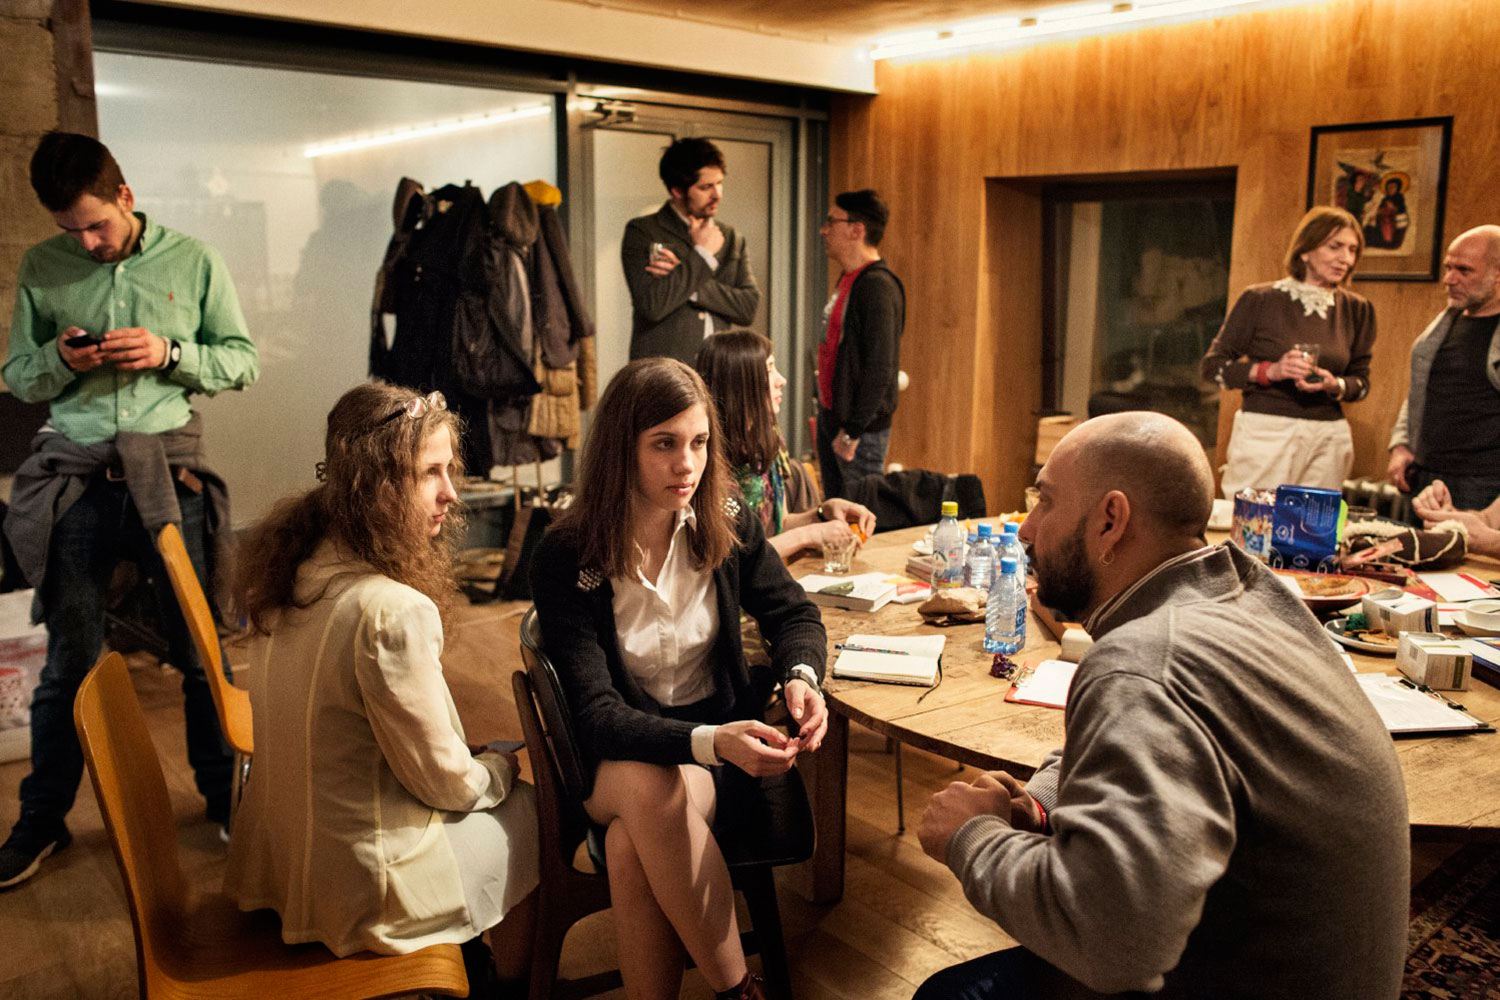 Maria Alyokhina and Nadezhda Tolokonnikova talk to Kirill Serebrennikov, one of the directors of the Gogol Center, where the first public screening in Russia of a documentary about the band was cancelled by the government at the last minute.